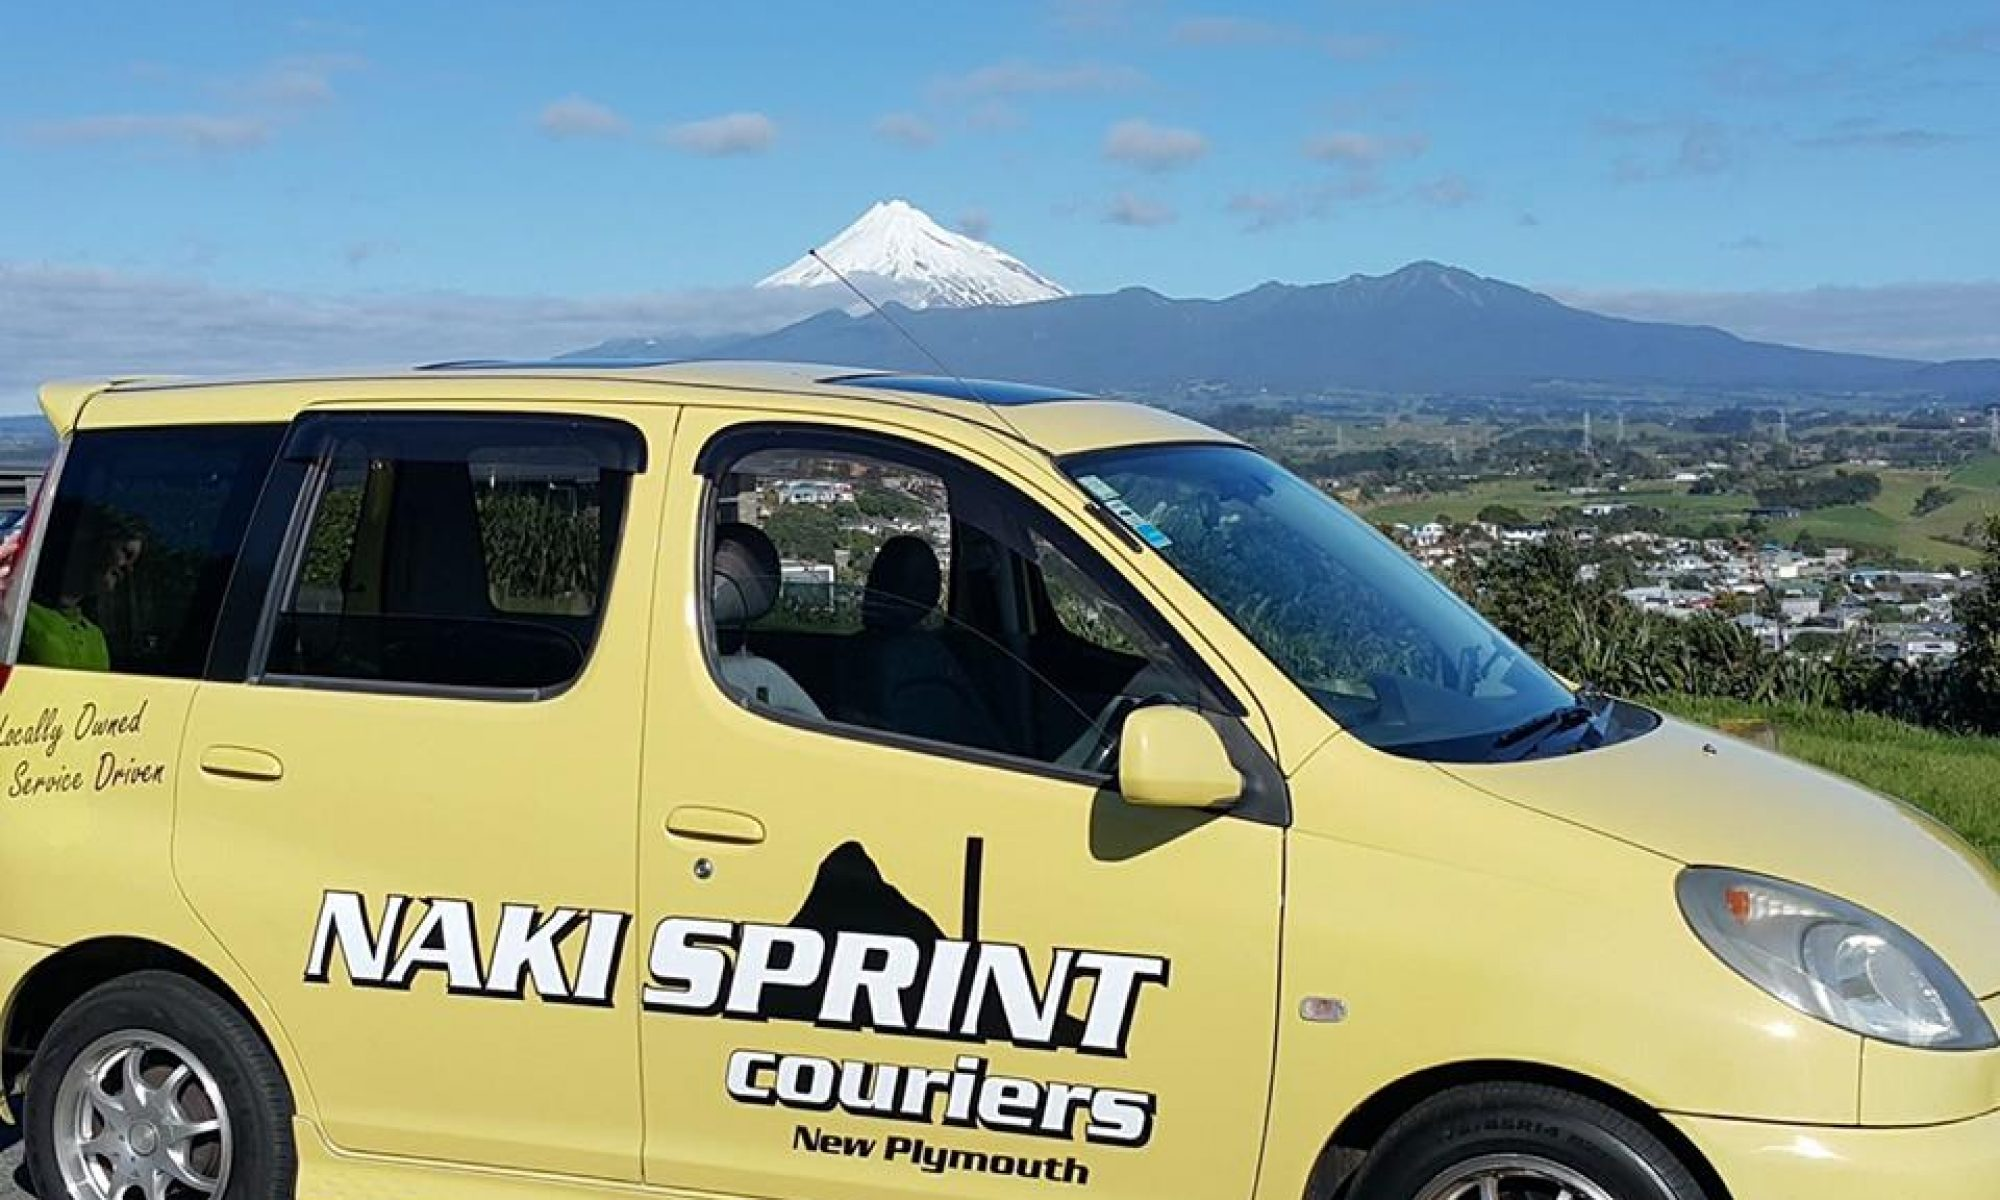 NakiSprint Couriers